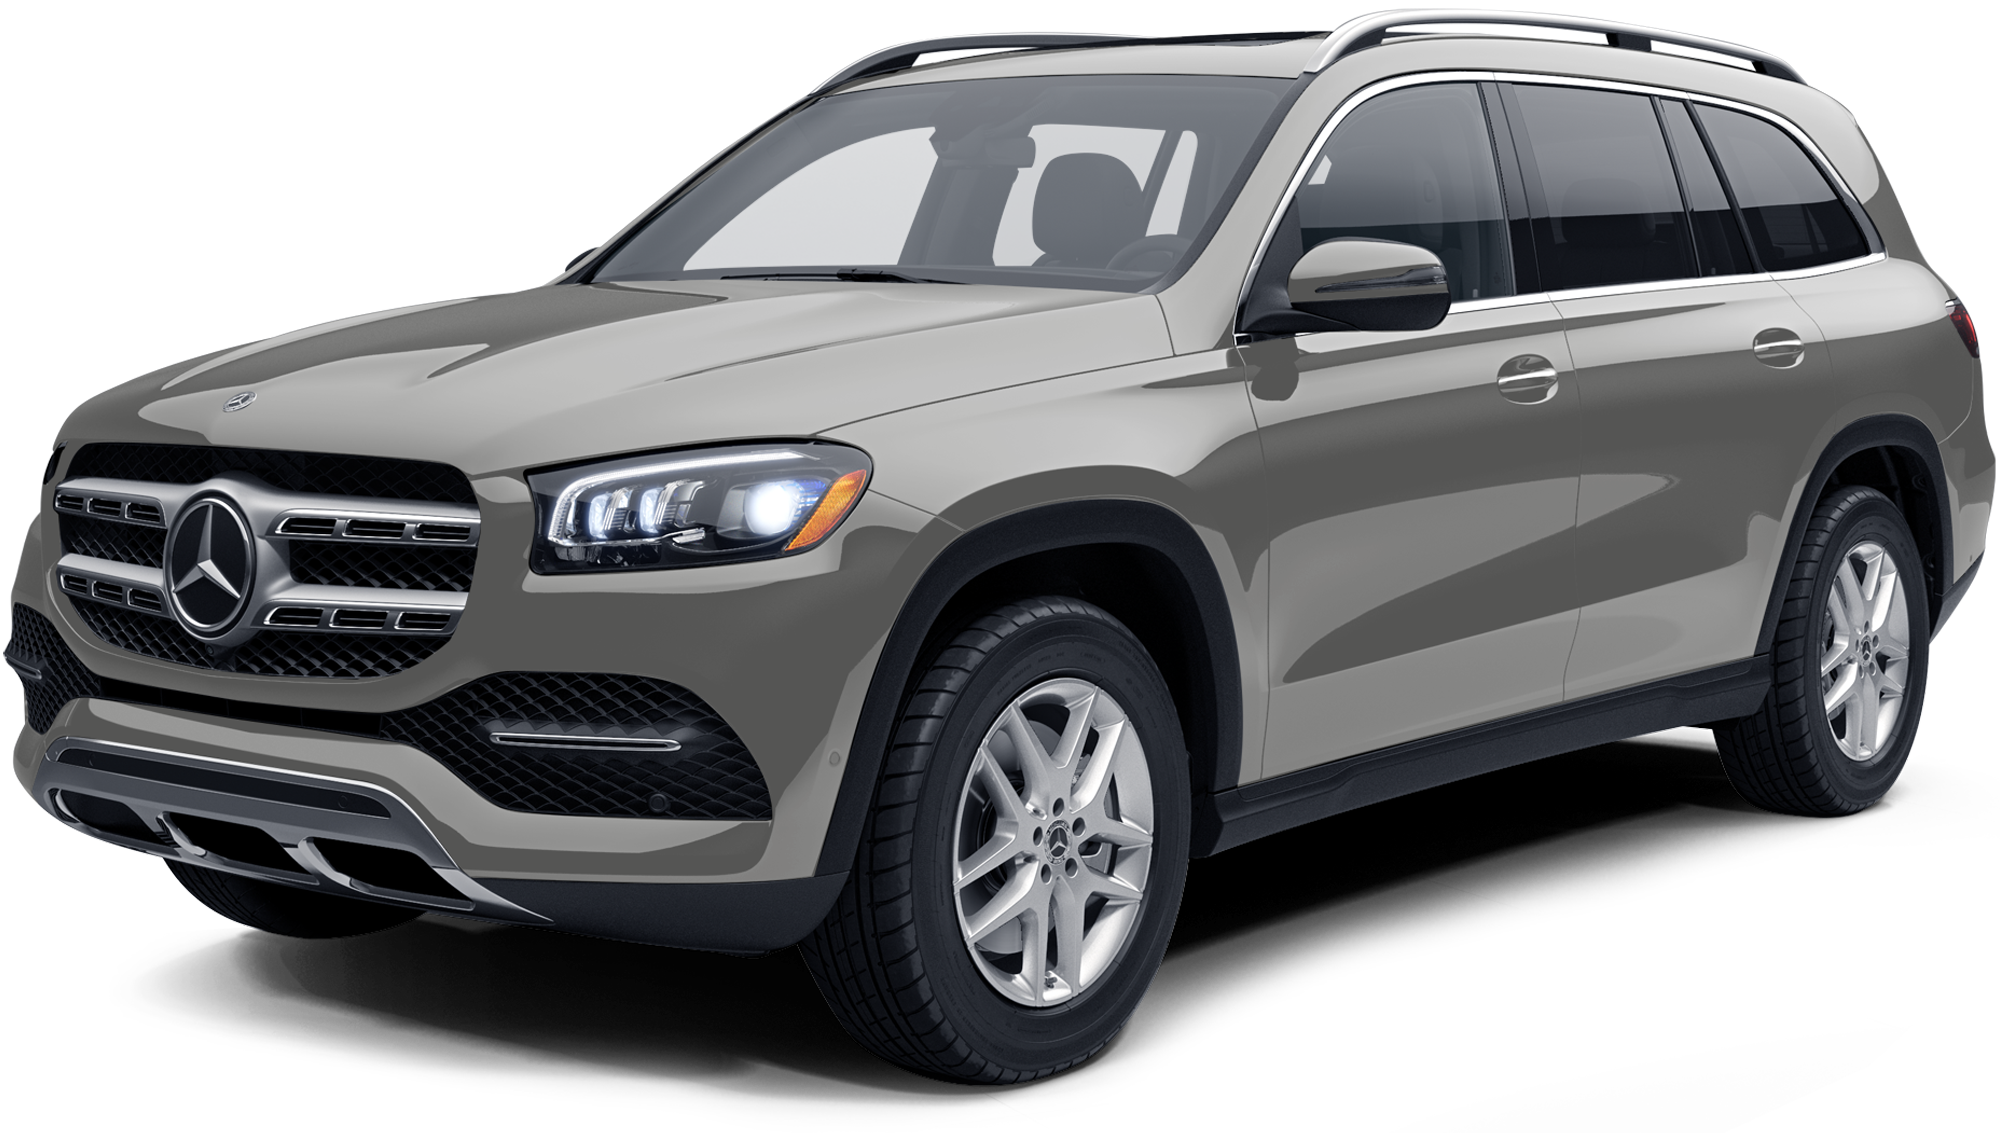 2020 Mercedes-Benz GLS 450 SUV 4MATIC